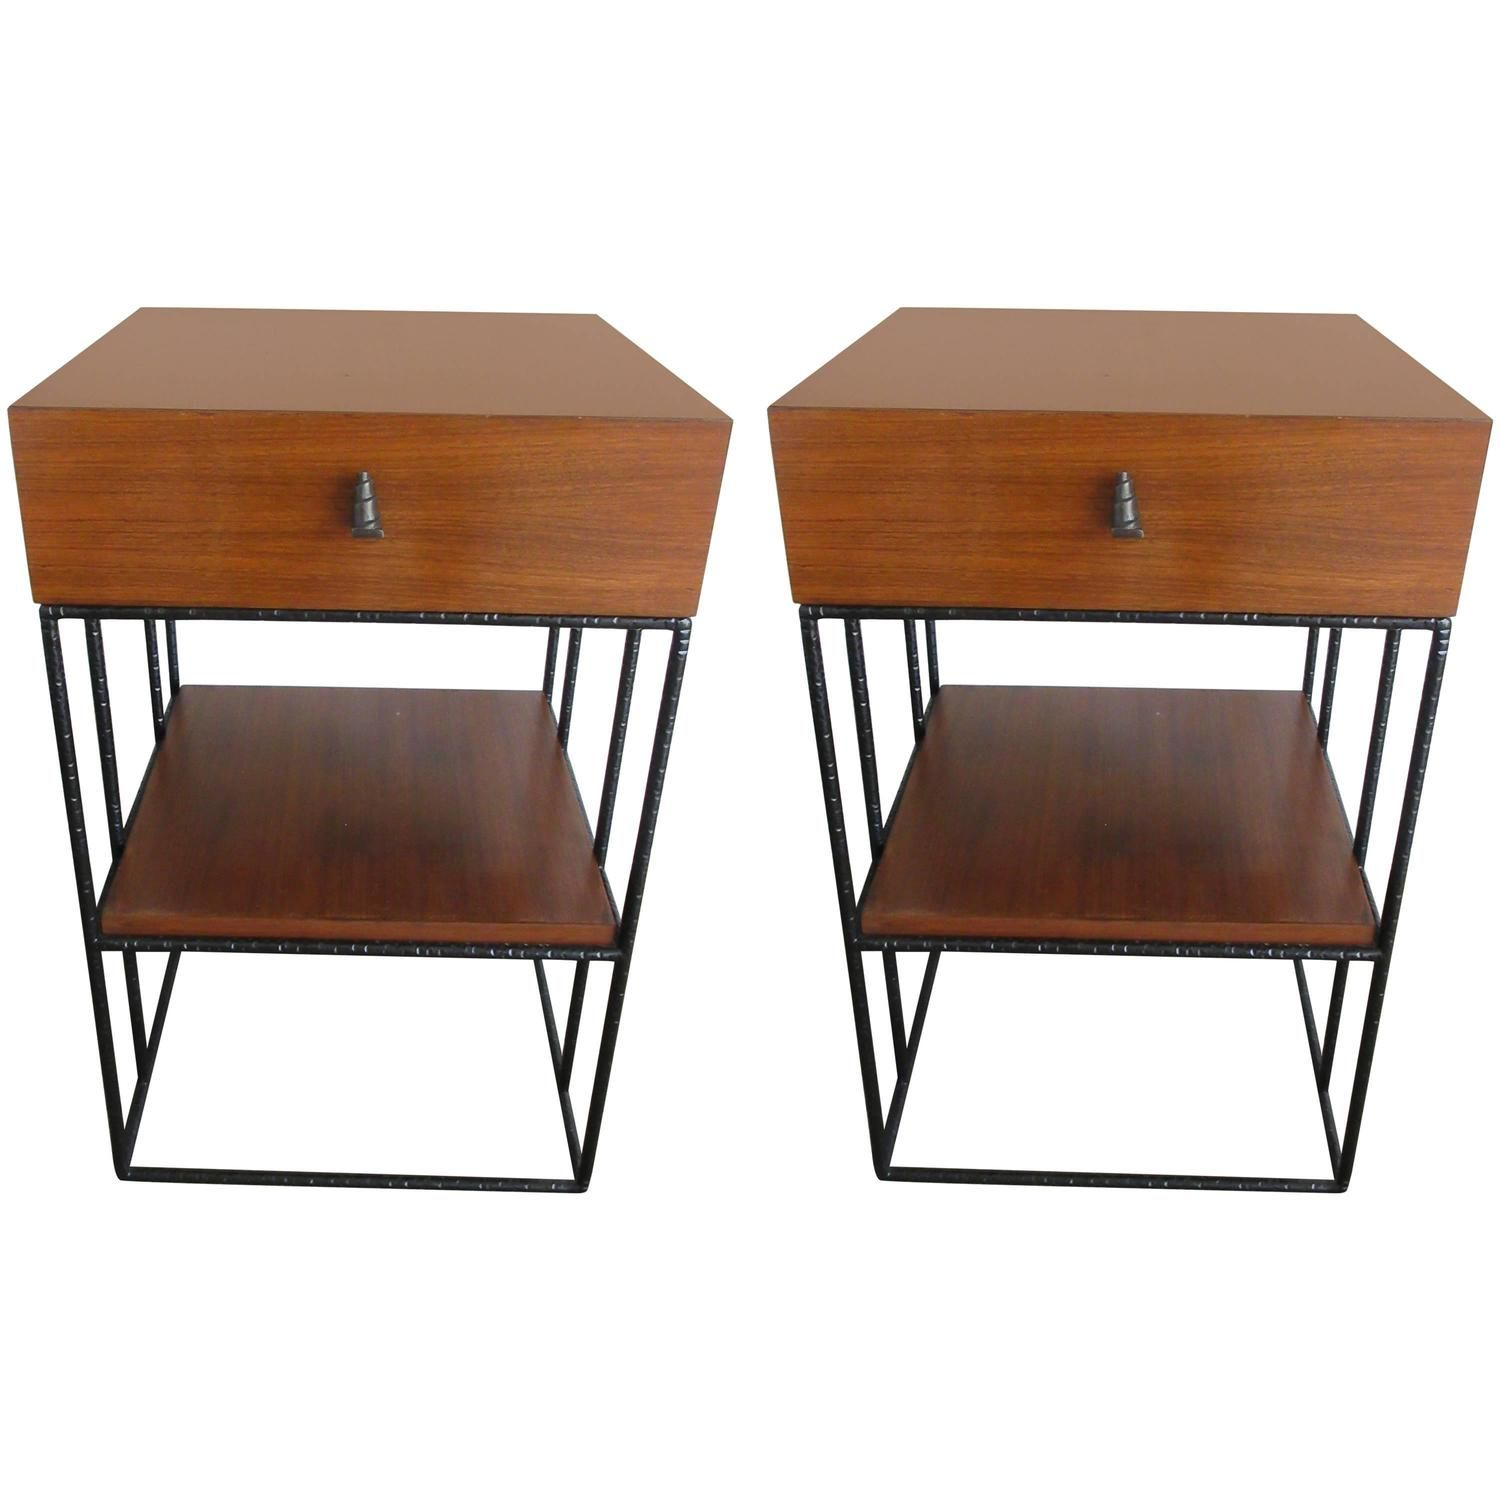 Pair Of Mid Century Two Level Maple Wood And Black Iron